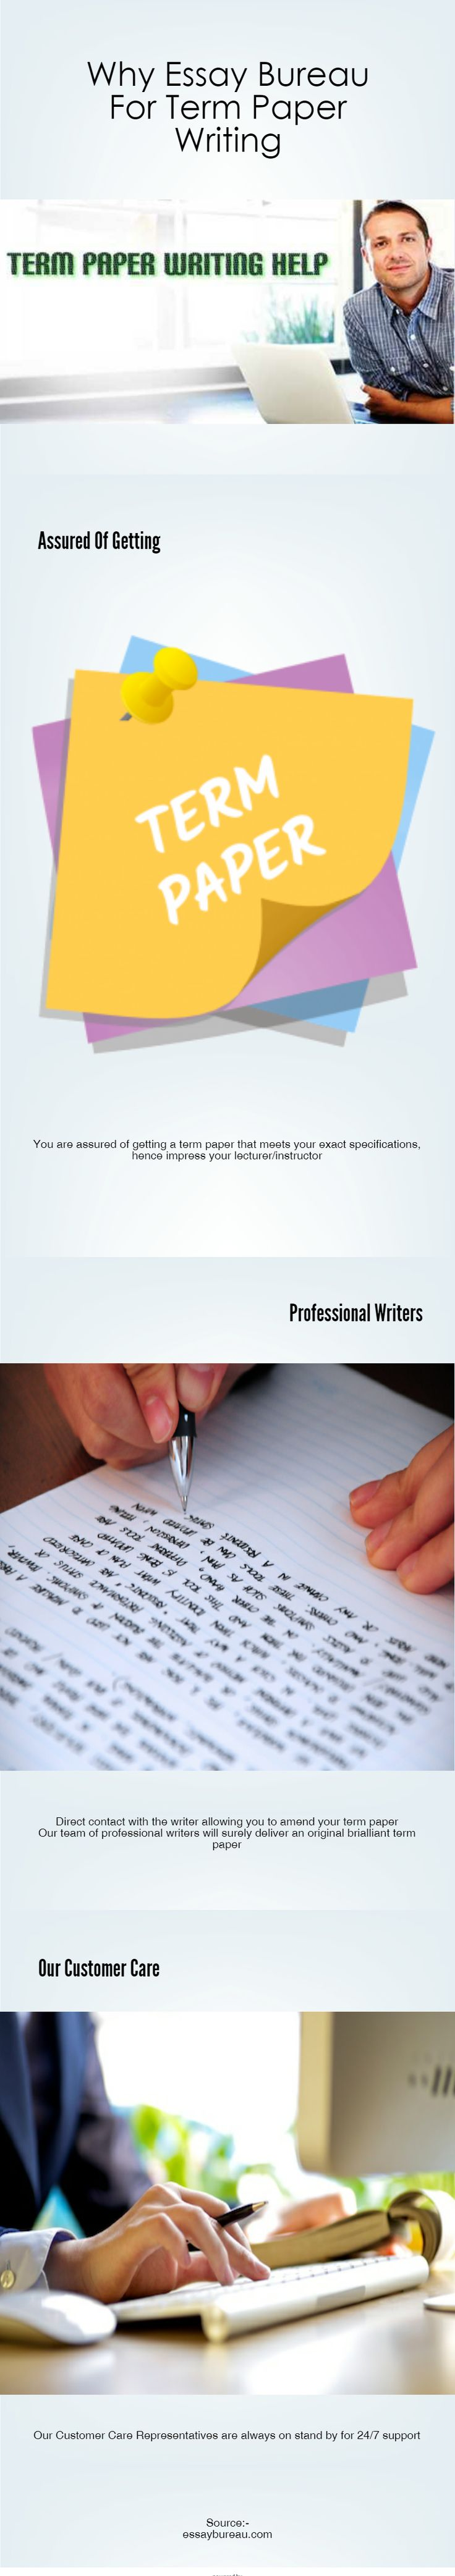 professional essay writing software Professional essay writing help place your trust in our custom essay writers, who will work directly with you to deliver satisfactory results that our people can each call themselves a professional academic essay writer they come stacked with significant experience in working with other students.